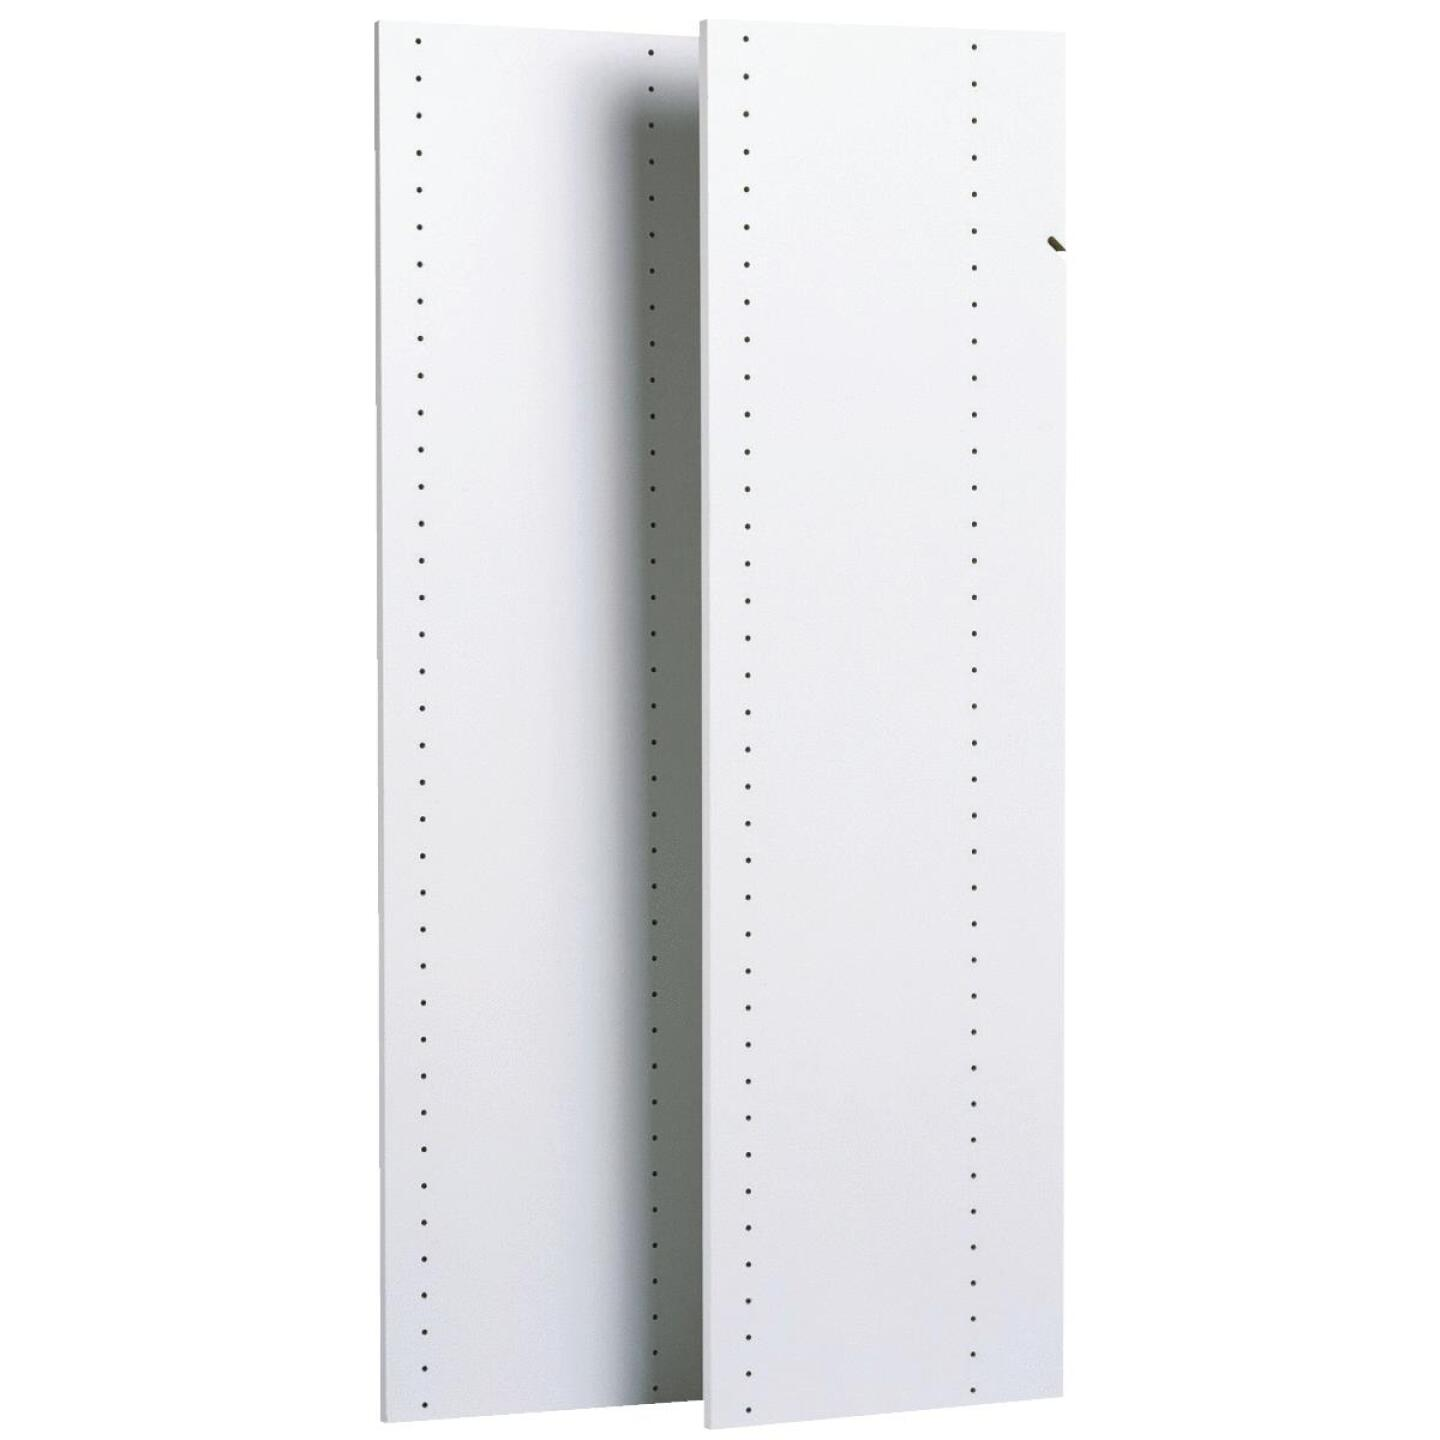 Easy Track 48 In. Closet Vertical Panel (2-Count) Image 1